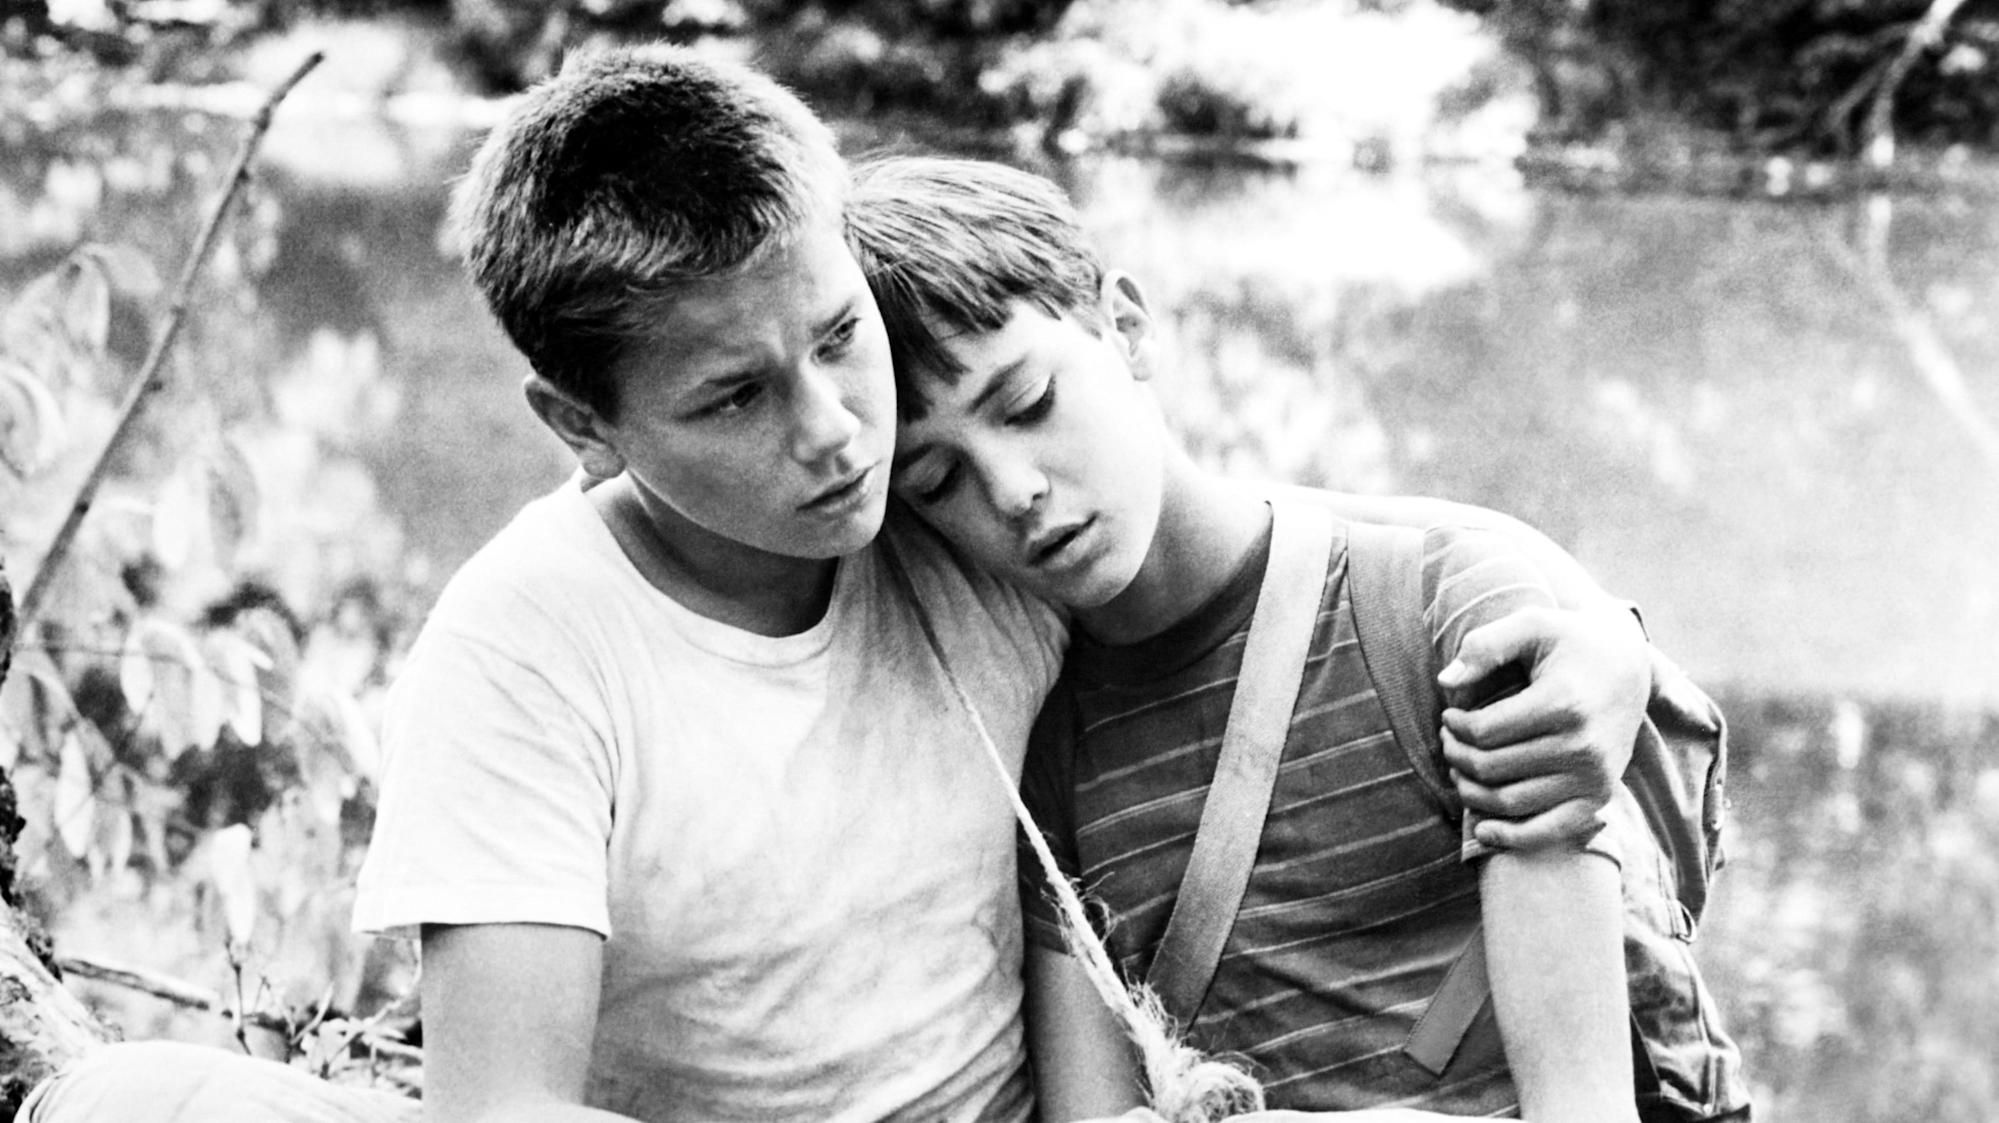 'Stand by Me' returns to theaters: Wil Wheaton remembers the coming-of-age classic